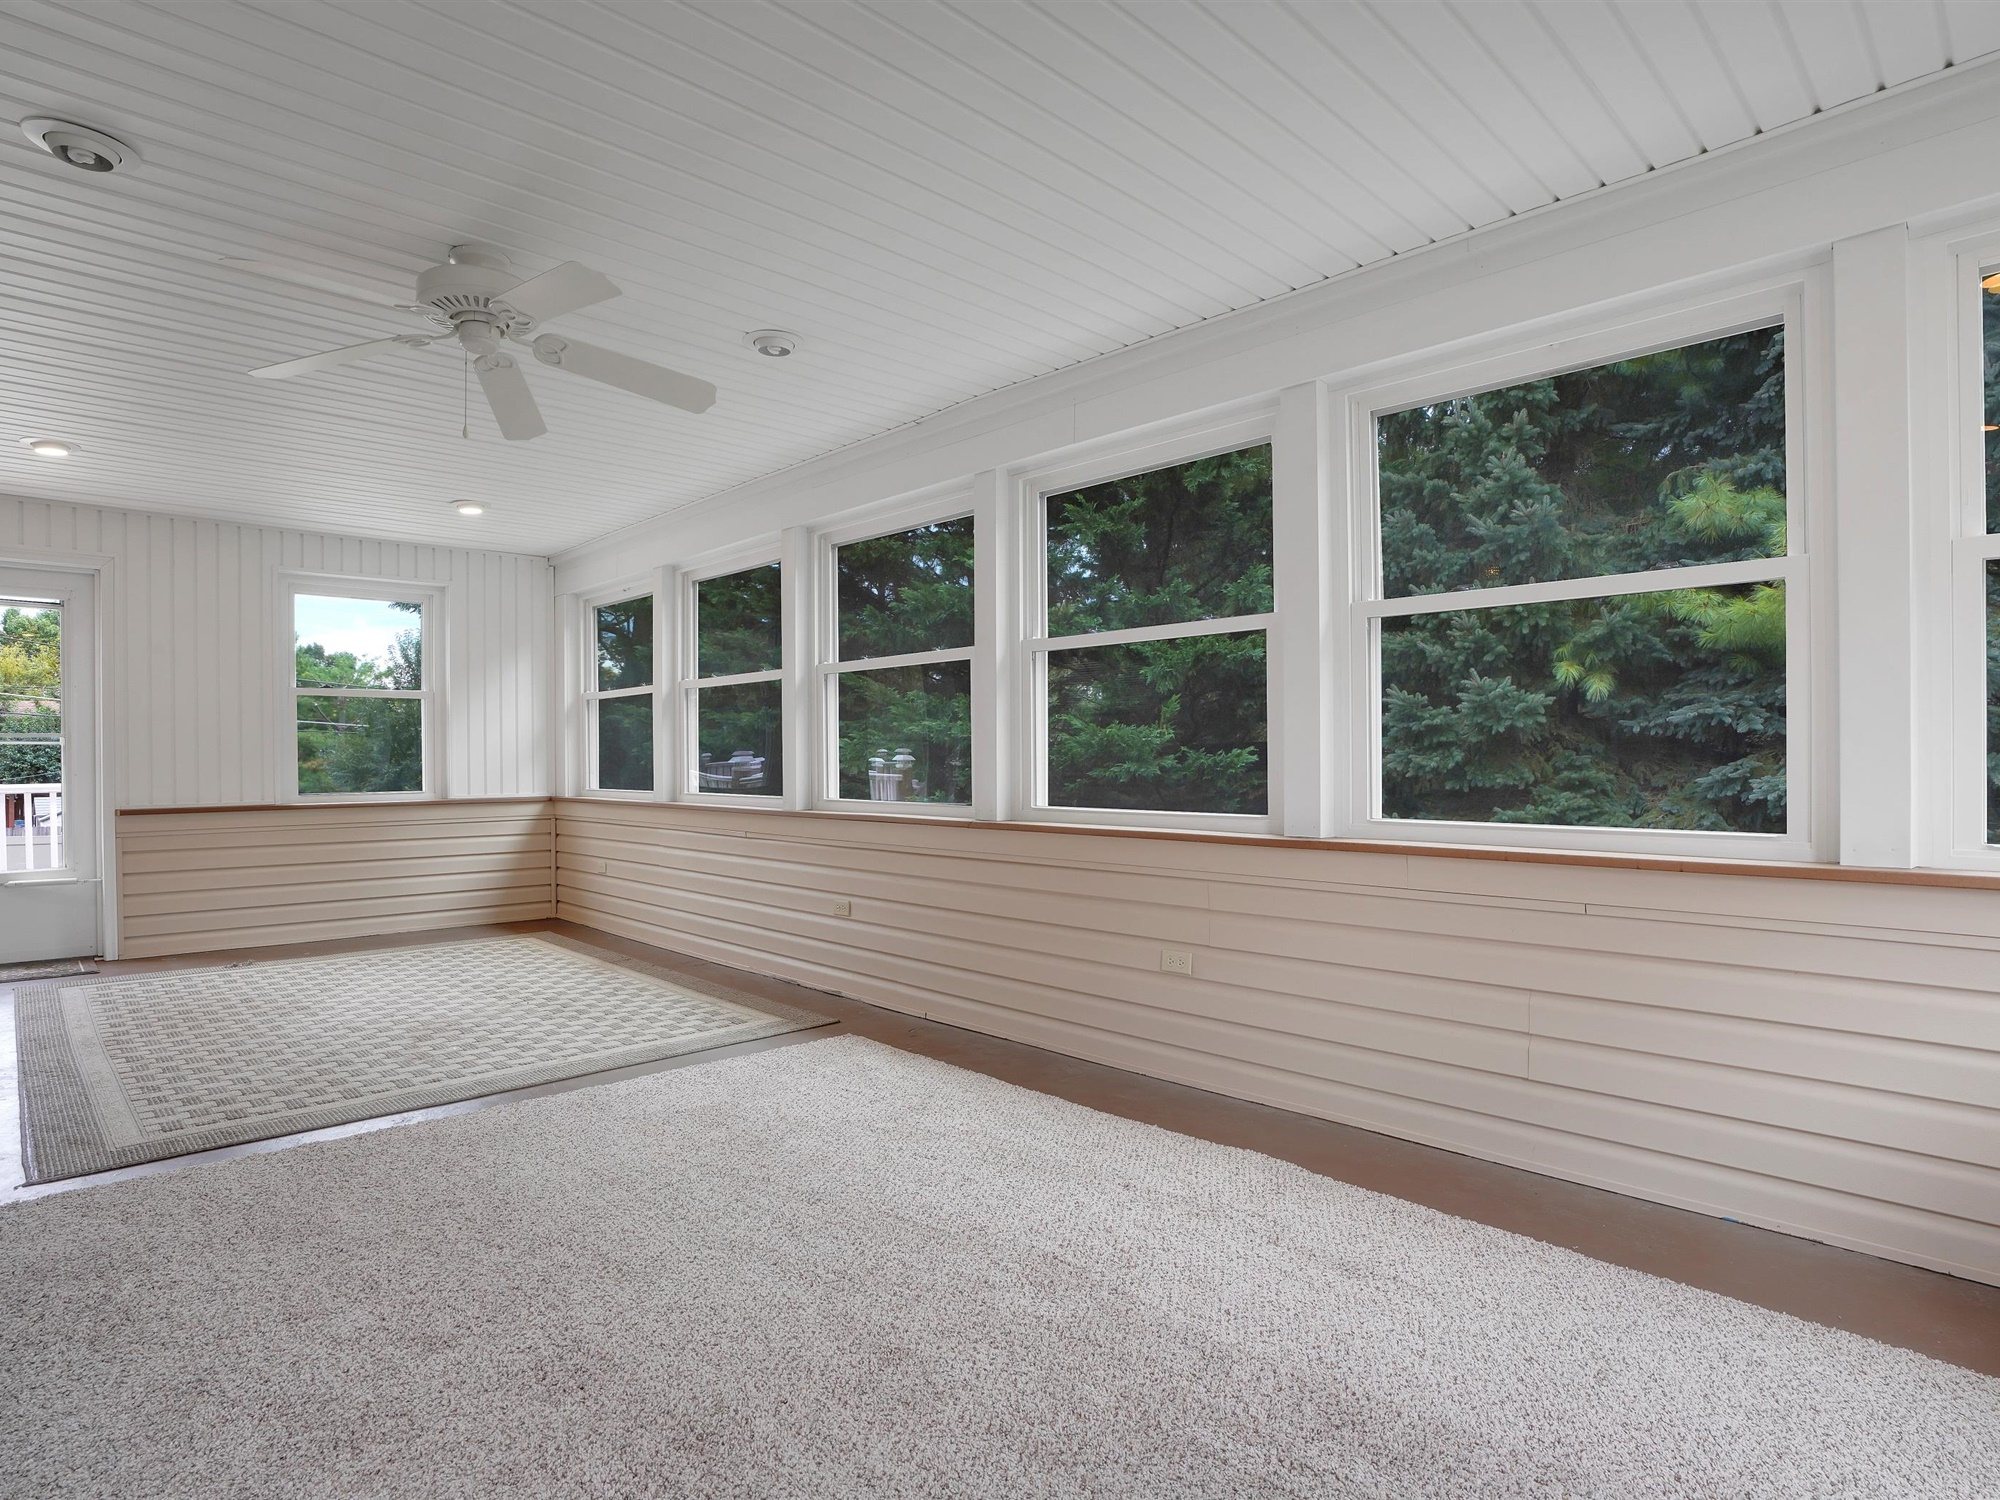 2022 Kline St - enclosed porch